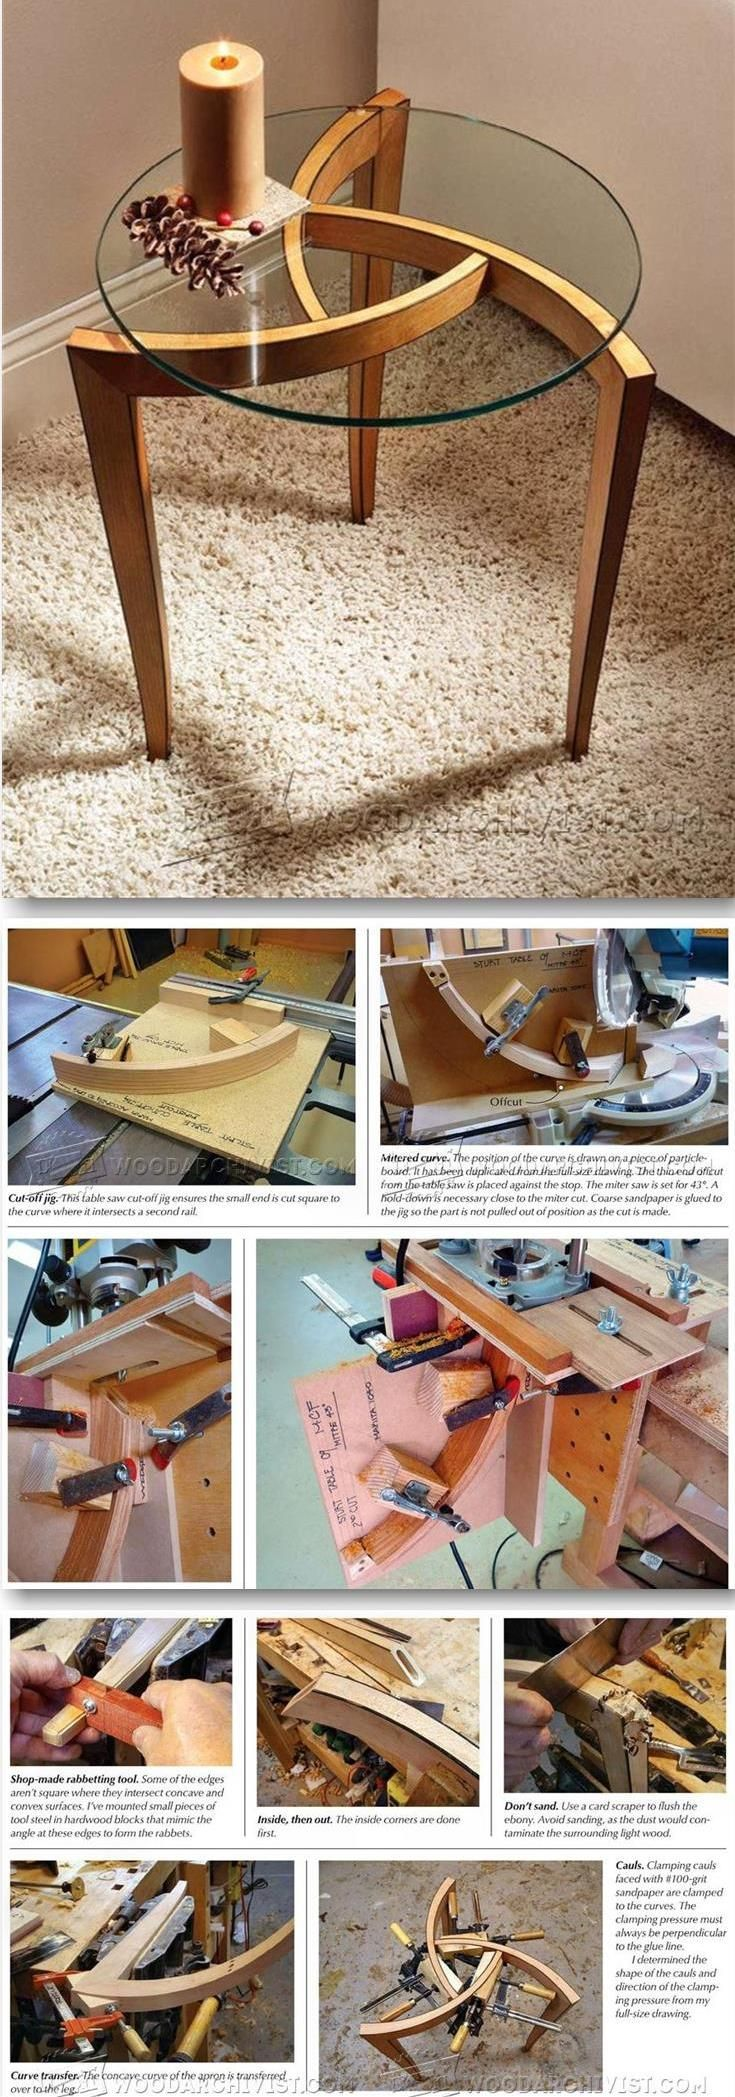 Occasional Table Plans   Furniture Plans and Projects   WoodArchivist com. Best 25  Woodworking furniture ideas on Pinterest   Diy furniture